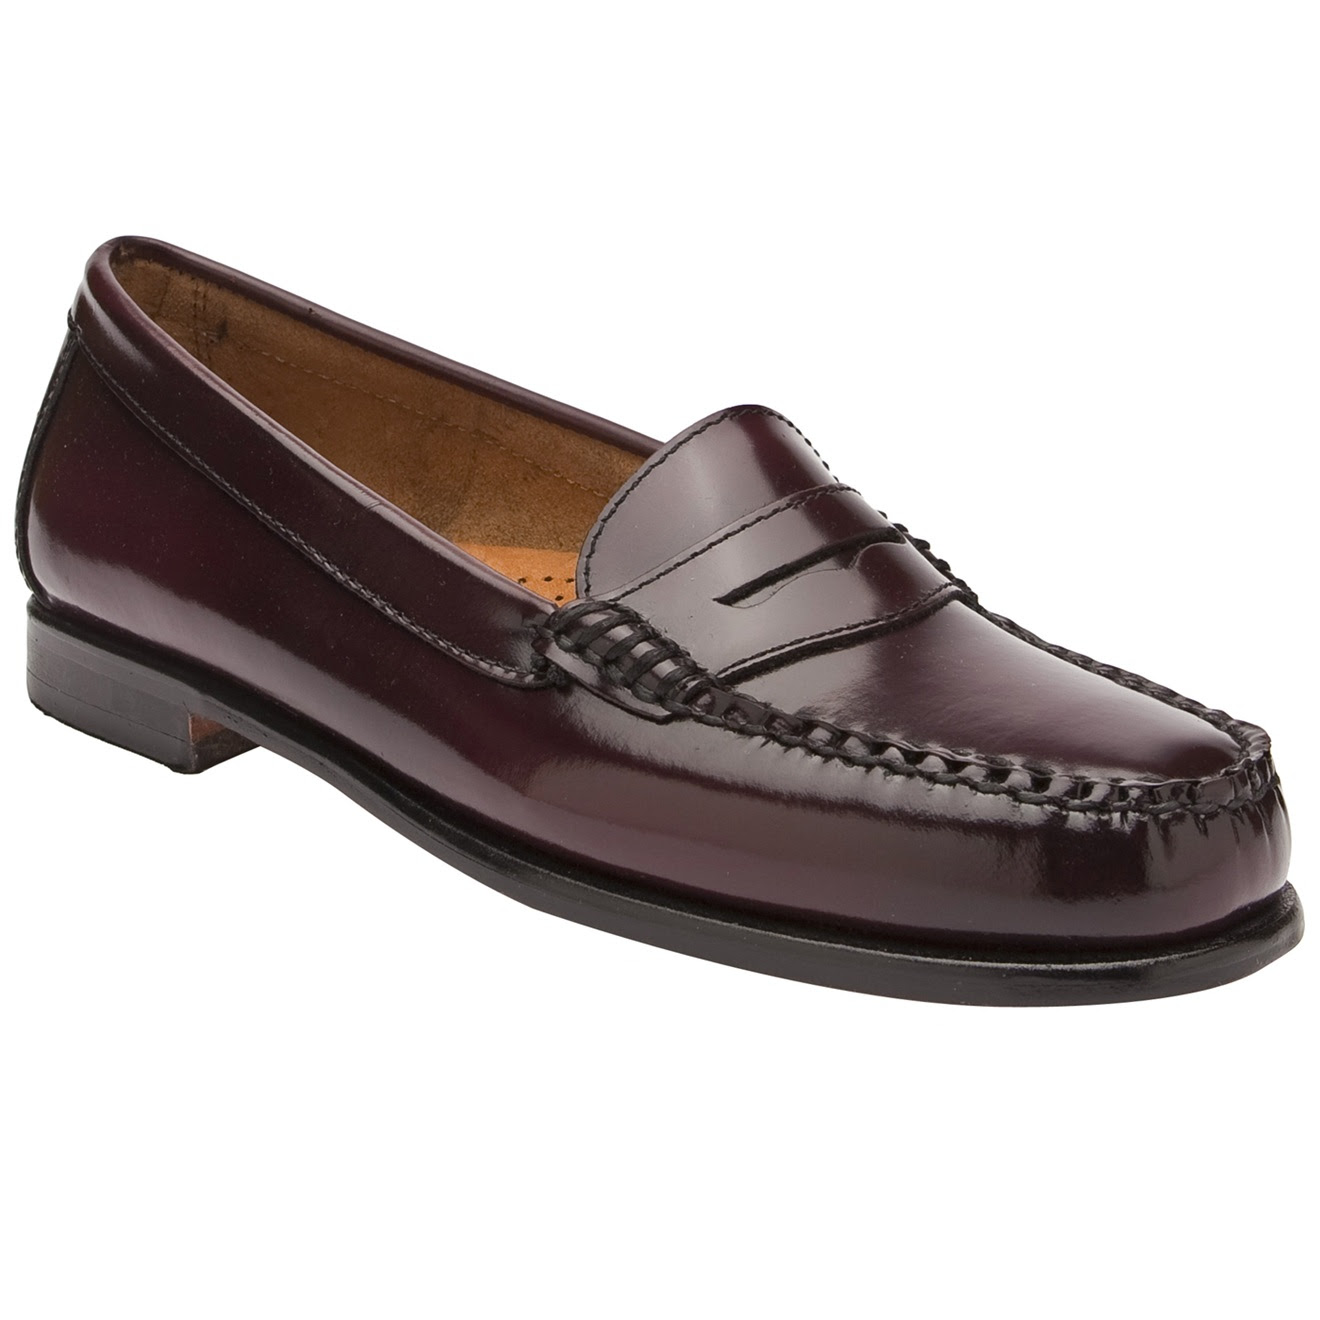 G.h. Bass & Co. Classic Penny Loafer in Purple (burgundy ...